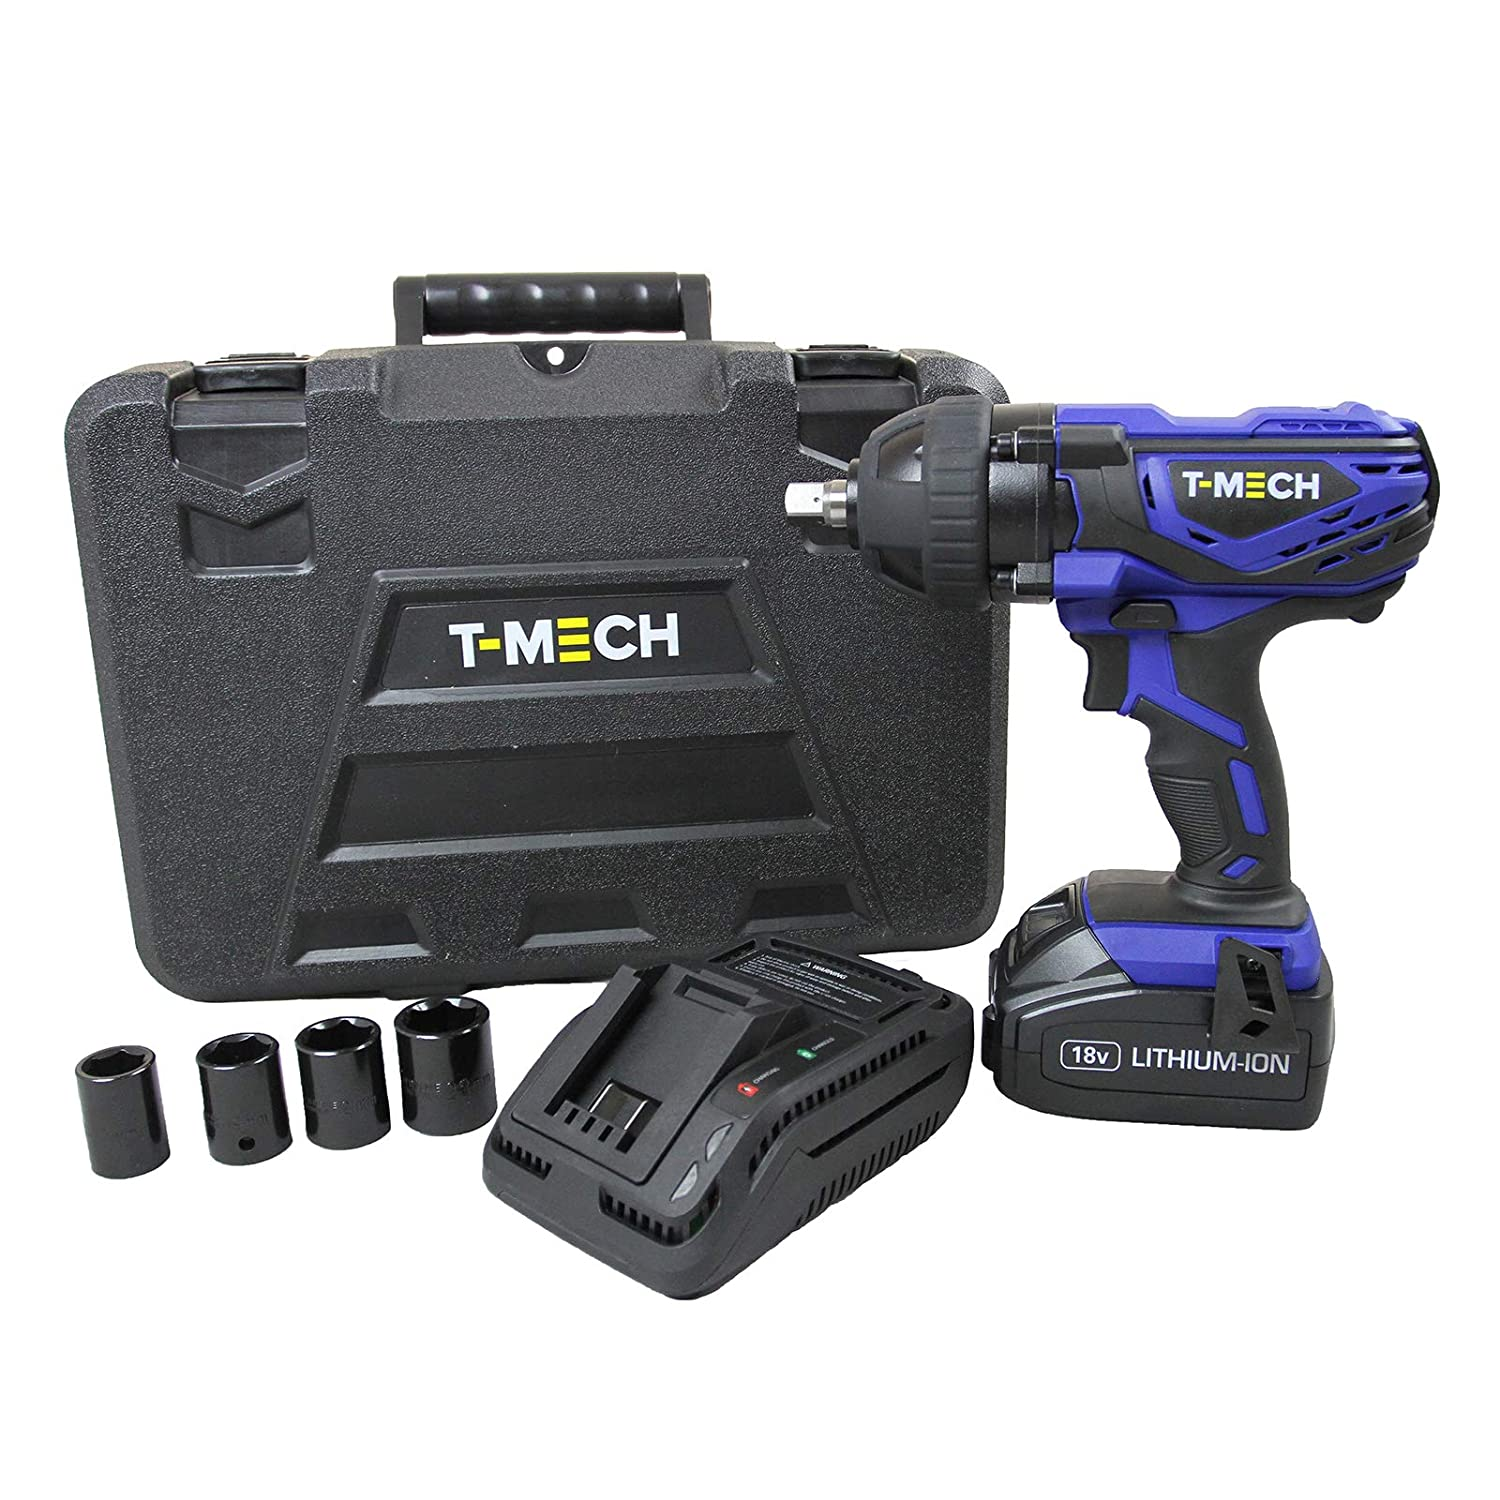 T-Mech Impact Wrench 18V Electric Cordless 1/2 Inch Driver Tool / 17mm, 19mm, 21mm & 23mm ½ Inch sockets 21mm & 23mm ½ Inch sockets MonsterShop